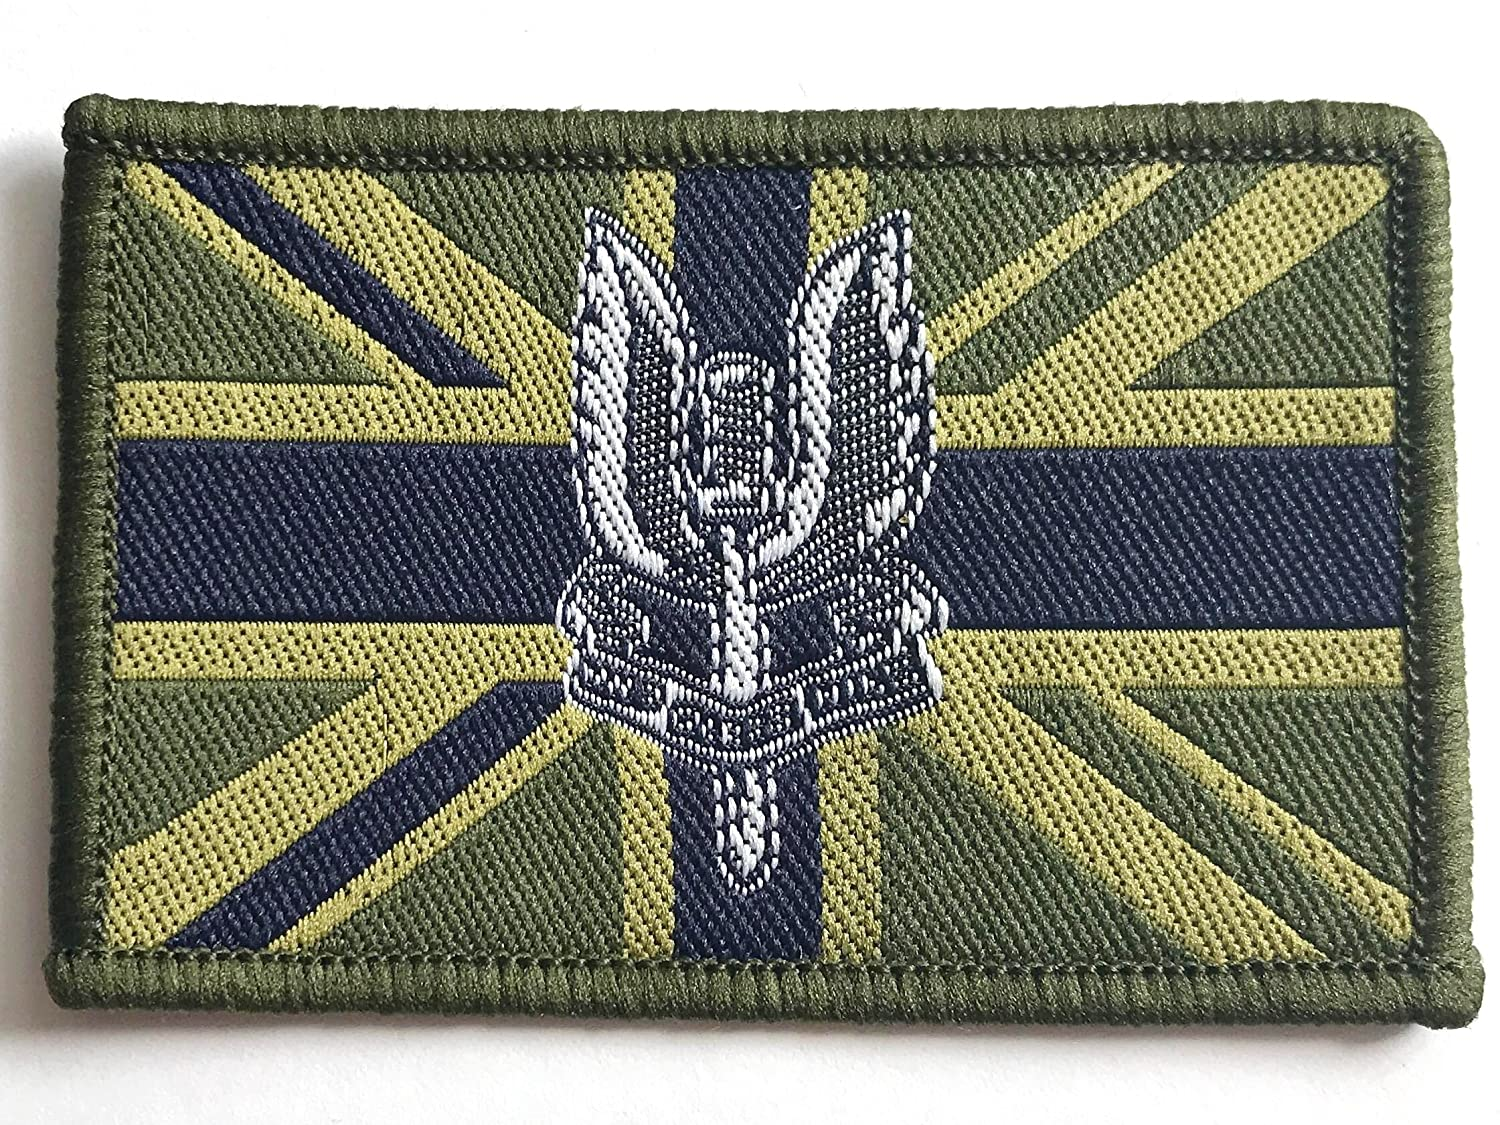 Vintage British Military Royal Navy UK Army Embroidered Iron Sew Badge Patch